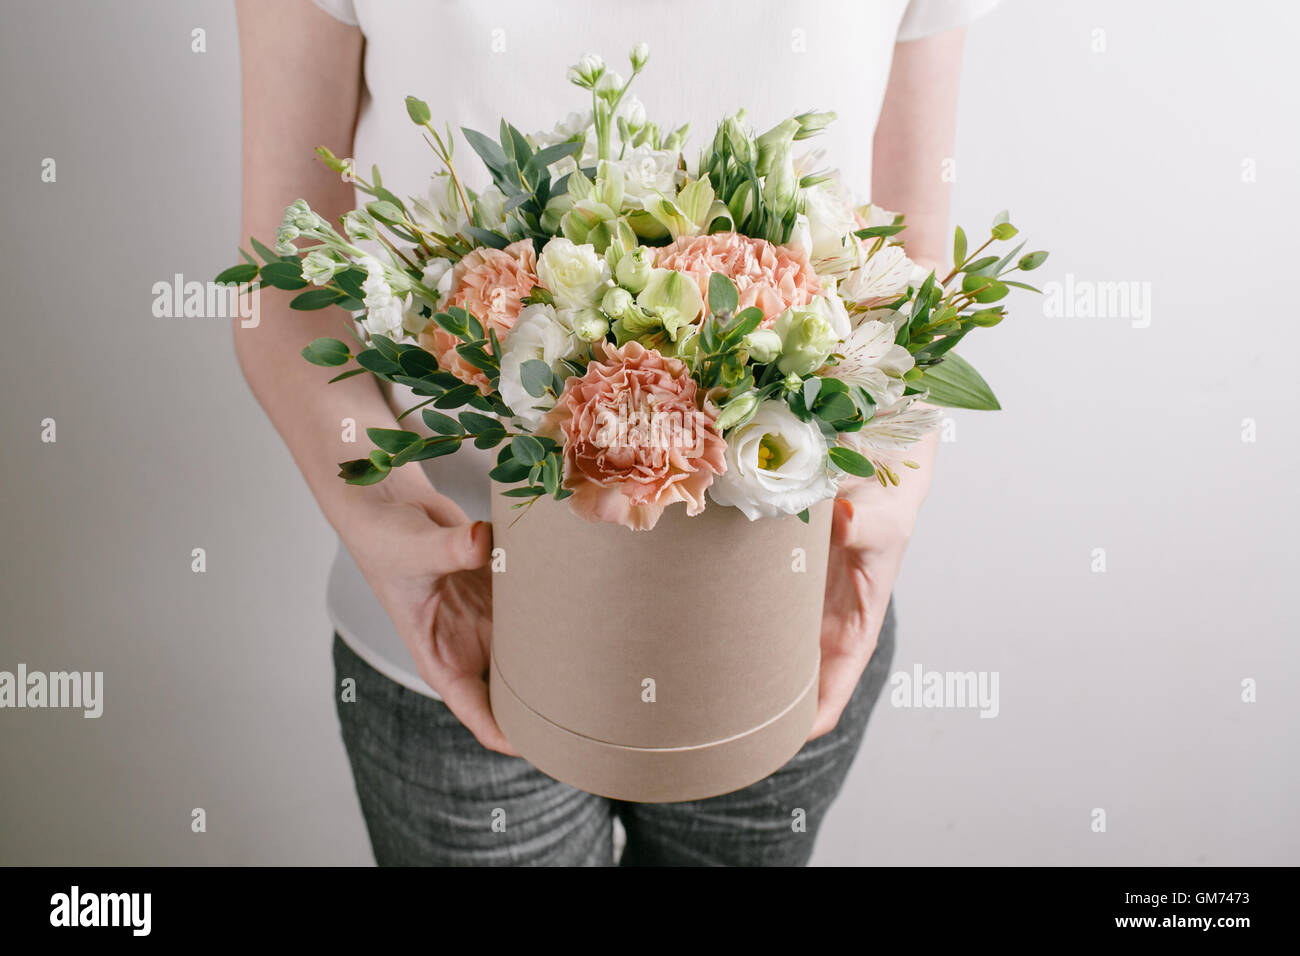 Work florist bouquet in a round box smelling flowers holding peach work florist bouquet in a round box smelling flowers holding peach roses bouquet in hat box against the plastered wall izmirmasajfo